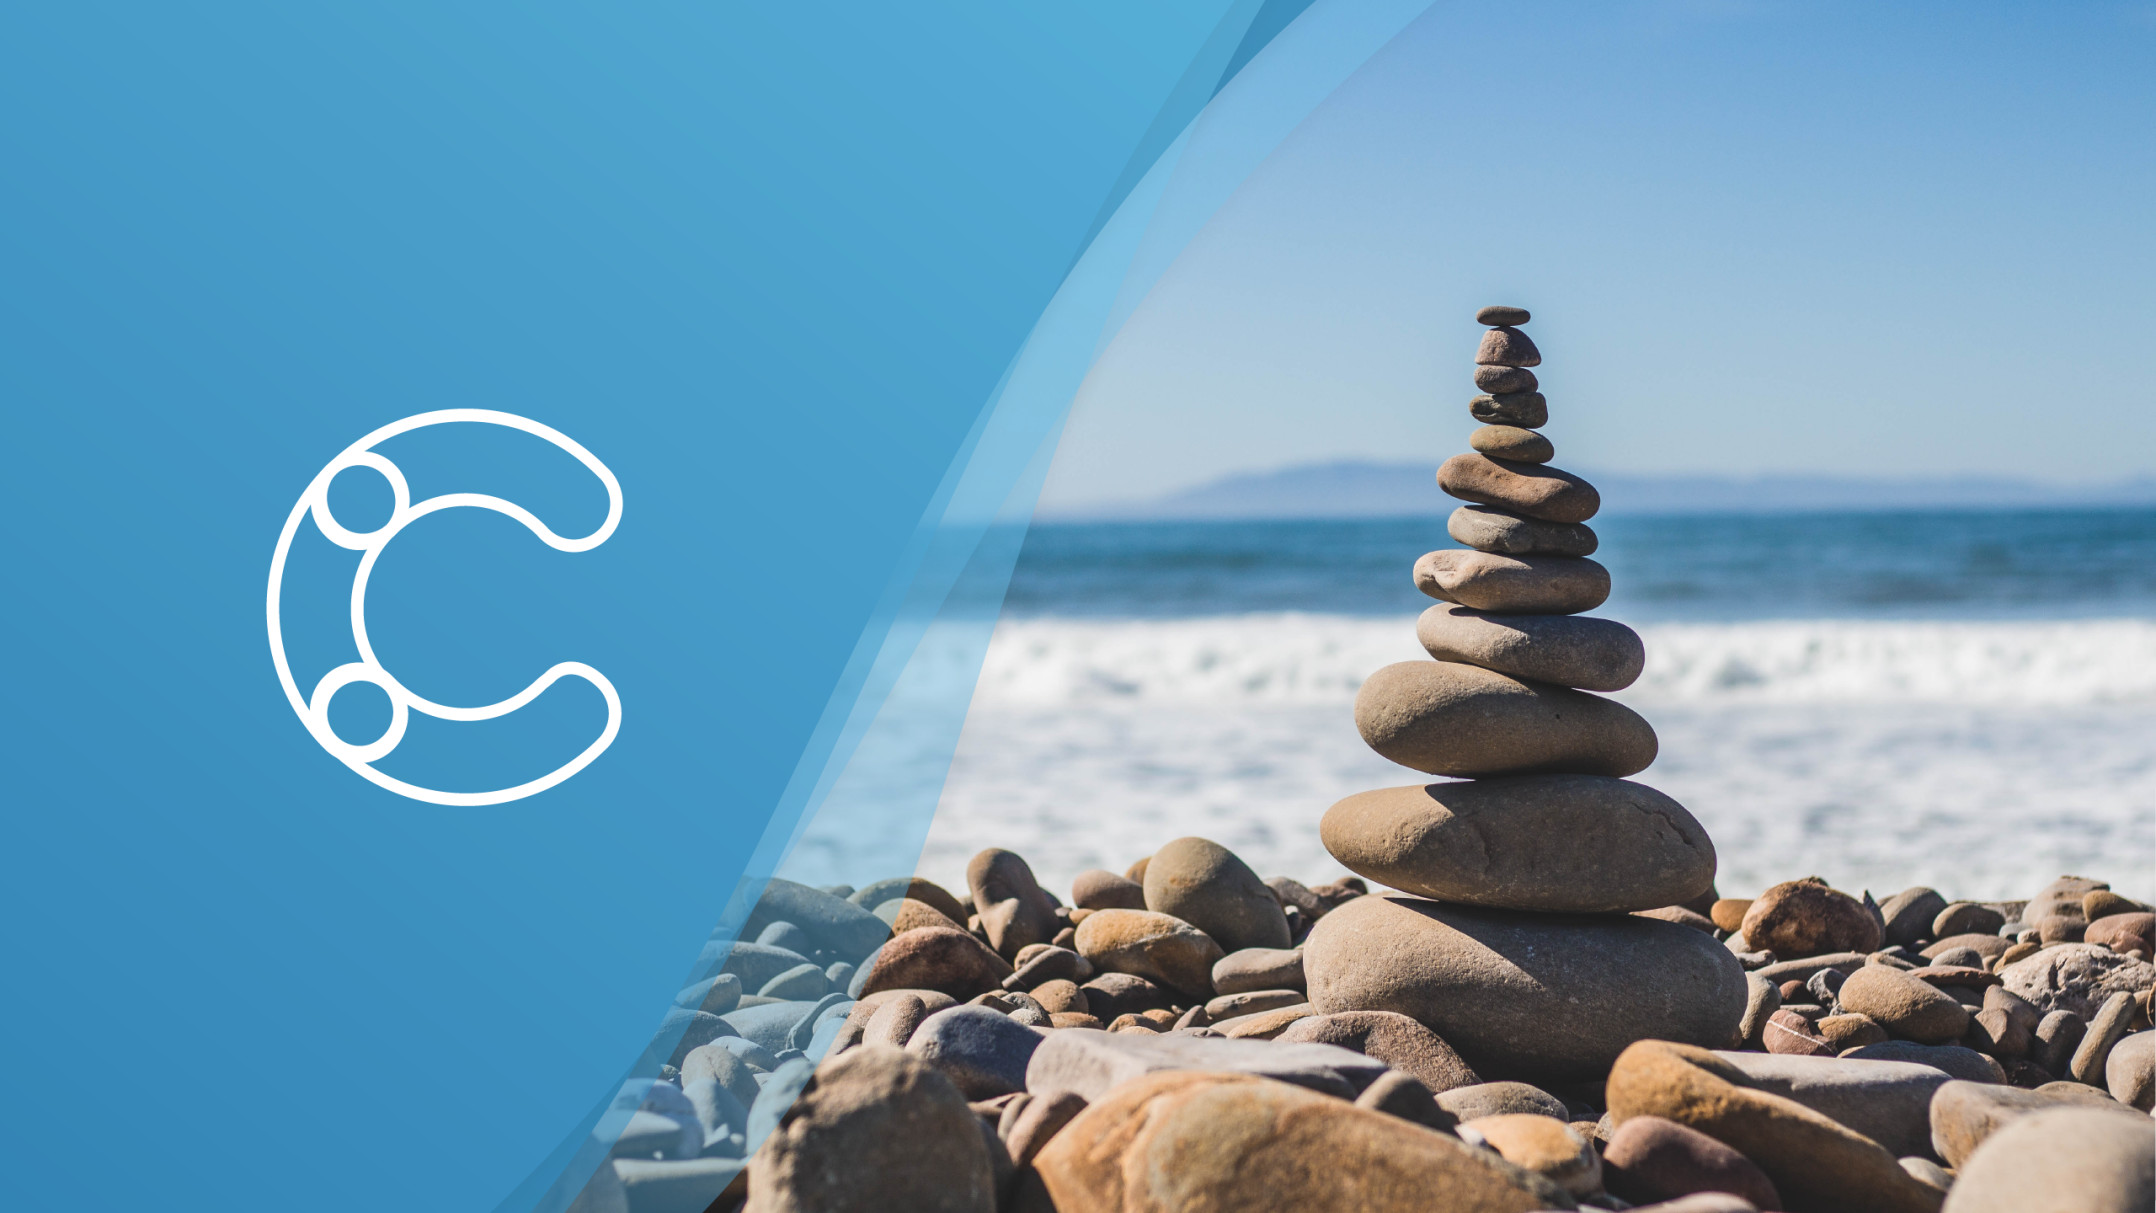 Blog header with an image of stones stacked on top of each other.